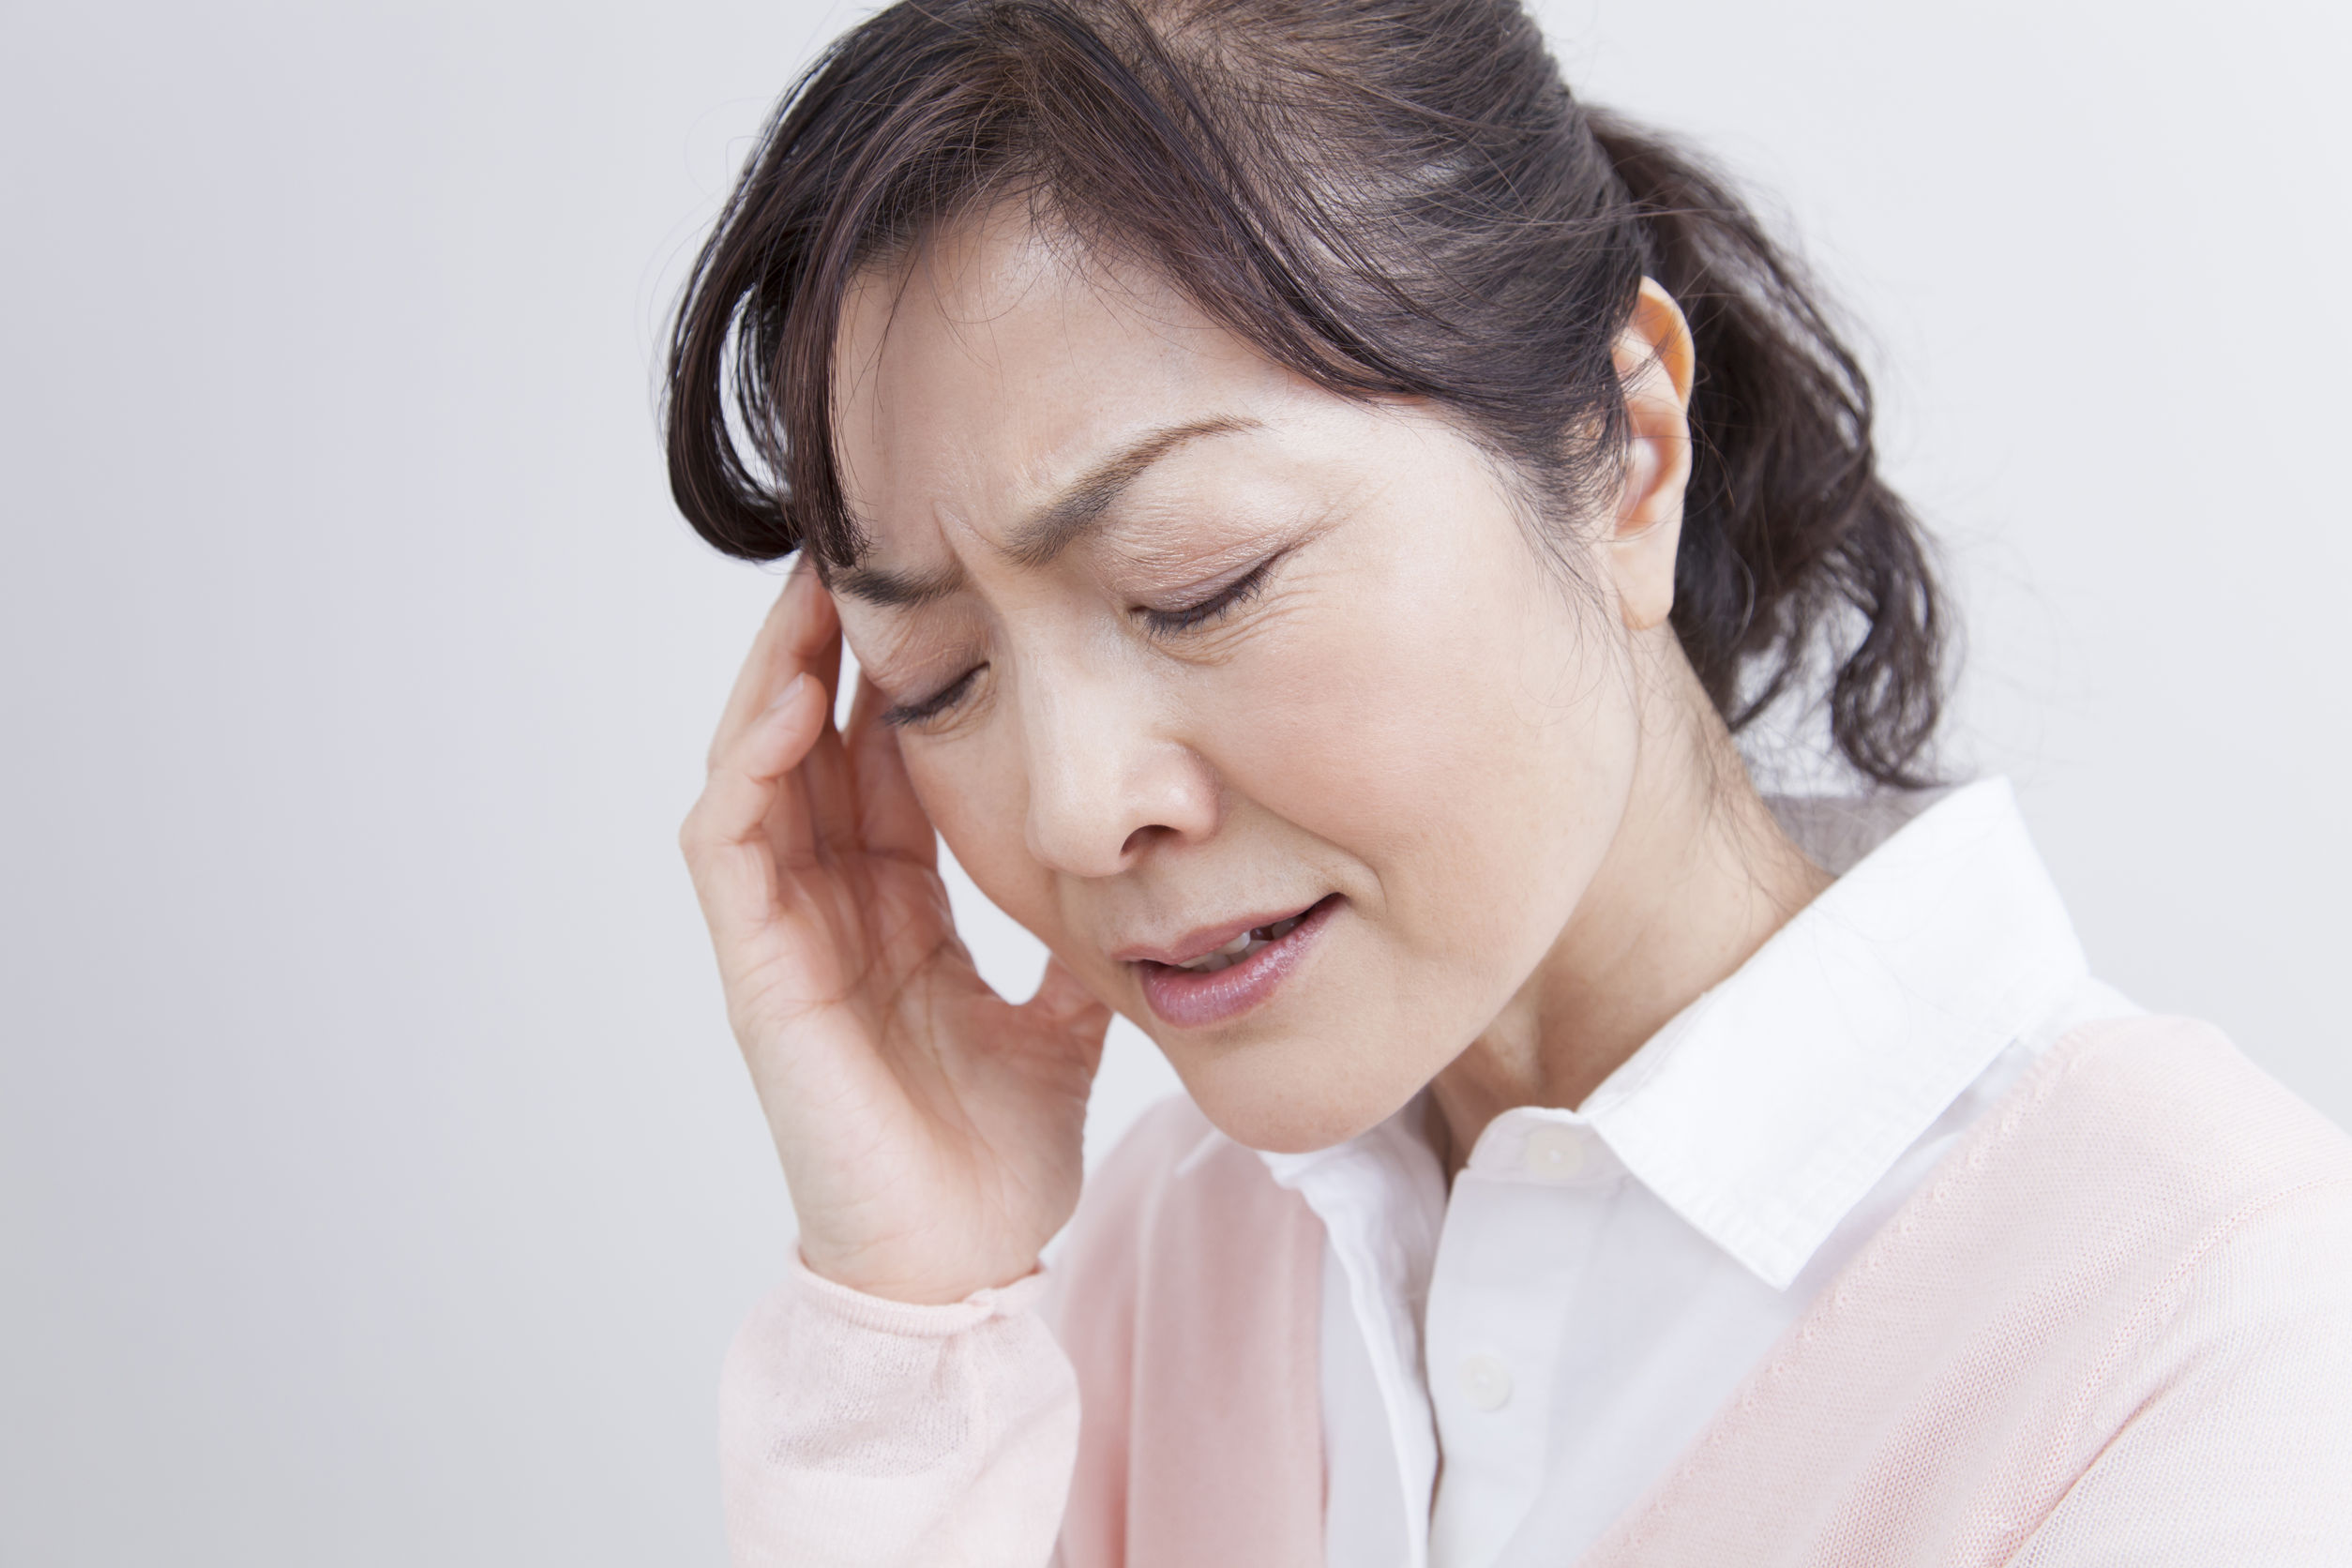 Chiropractic Treatment for Head Issues